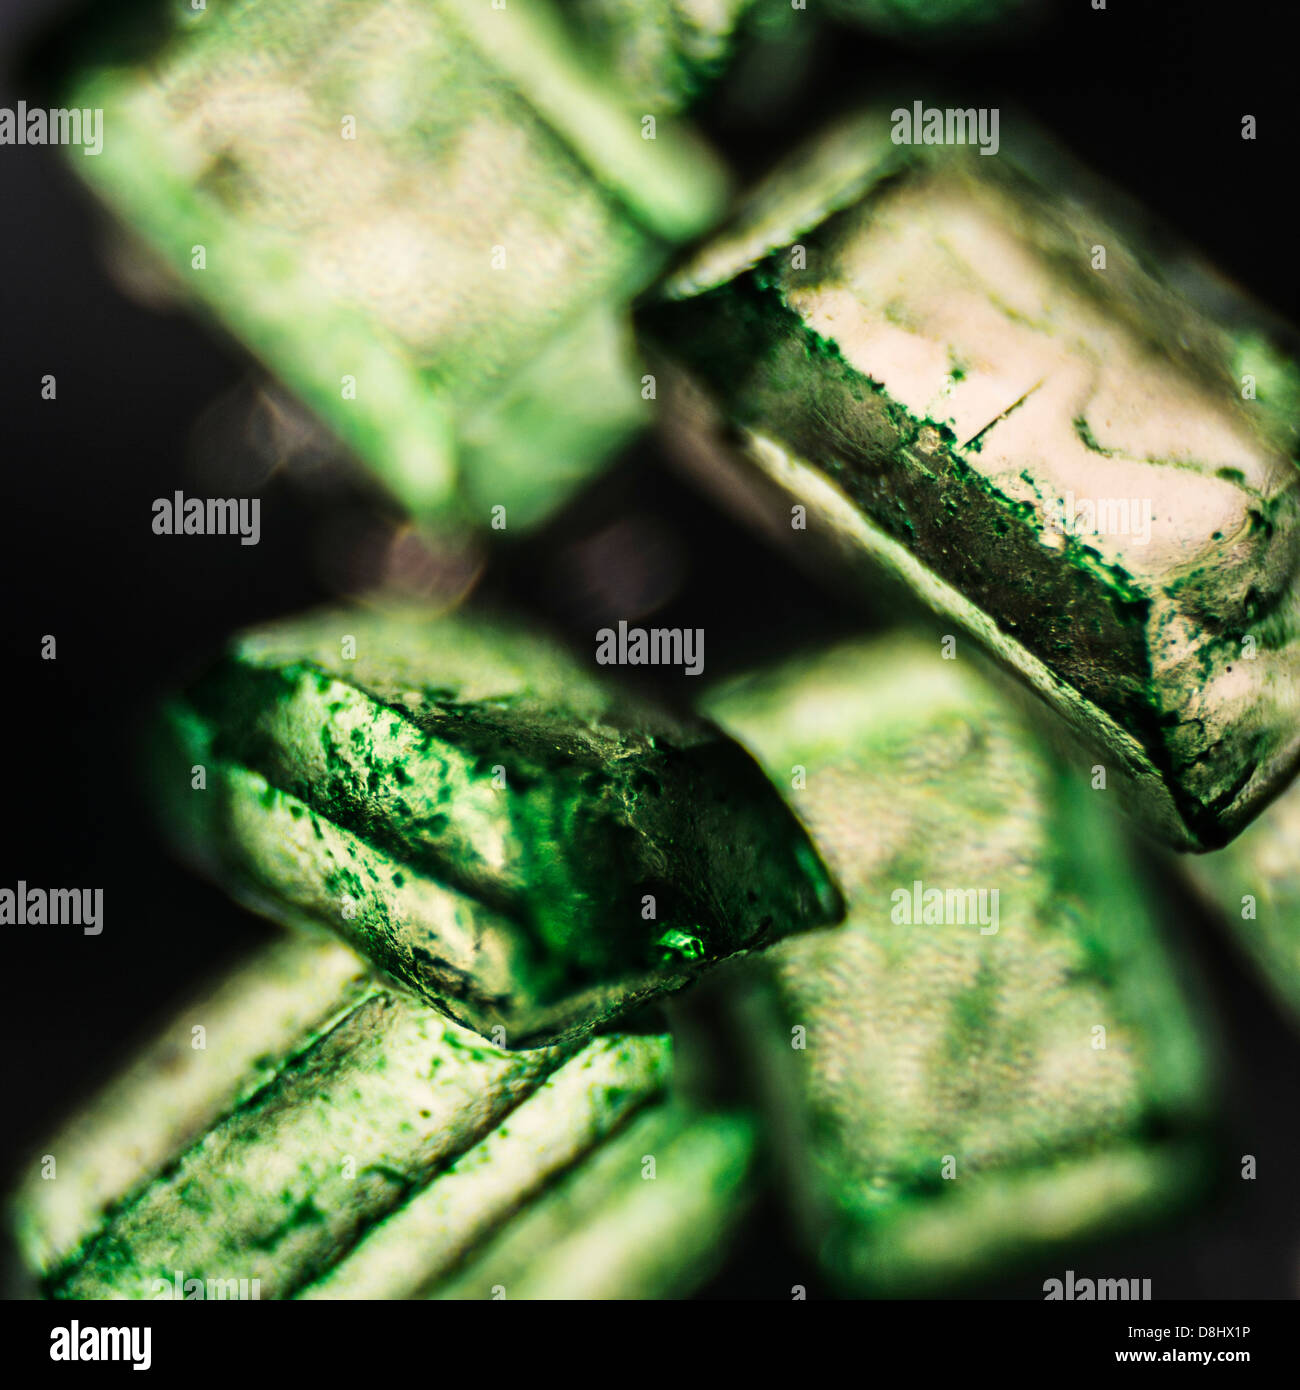 A series of microscopic and macroscopic images depicting ingredients used in the kitchen. - Stock Image